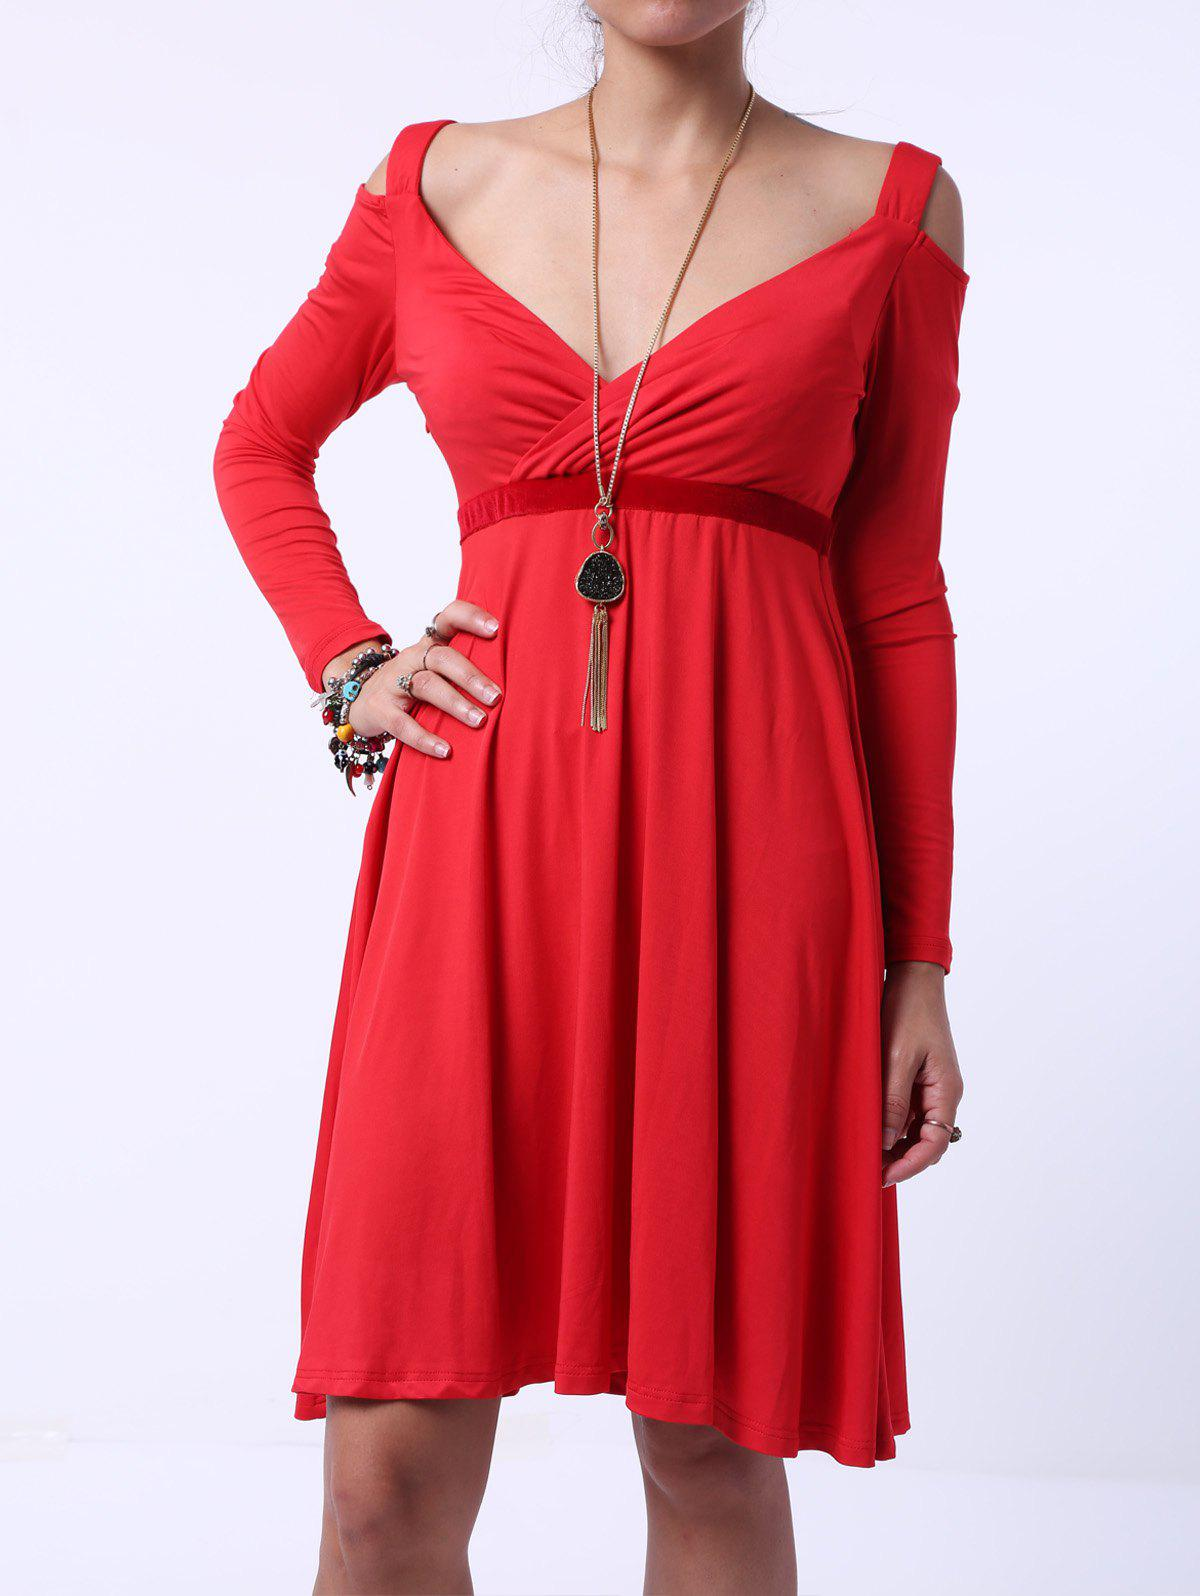 Graceful Sweetheart Neck Shoulder Cut Out Long Sleeve Midi Dress For Women - RED 5XL